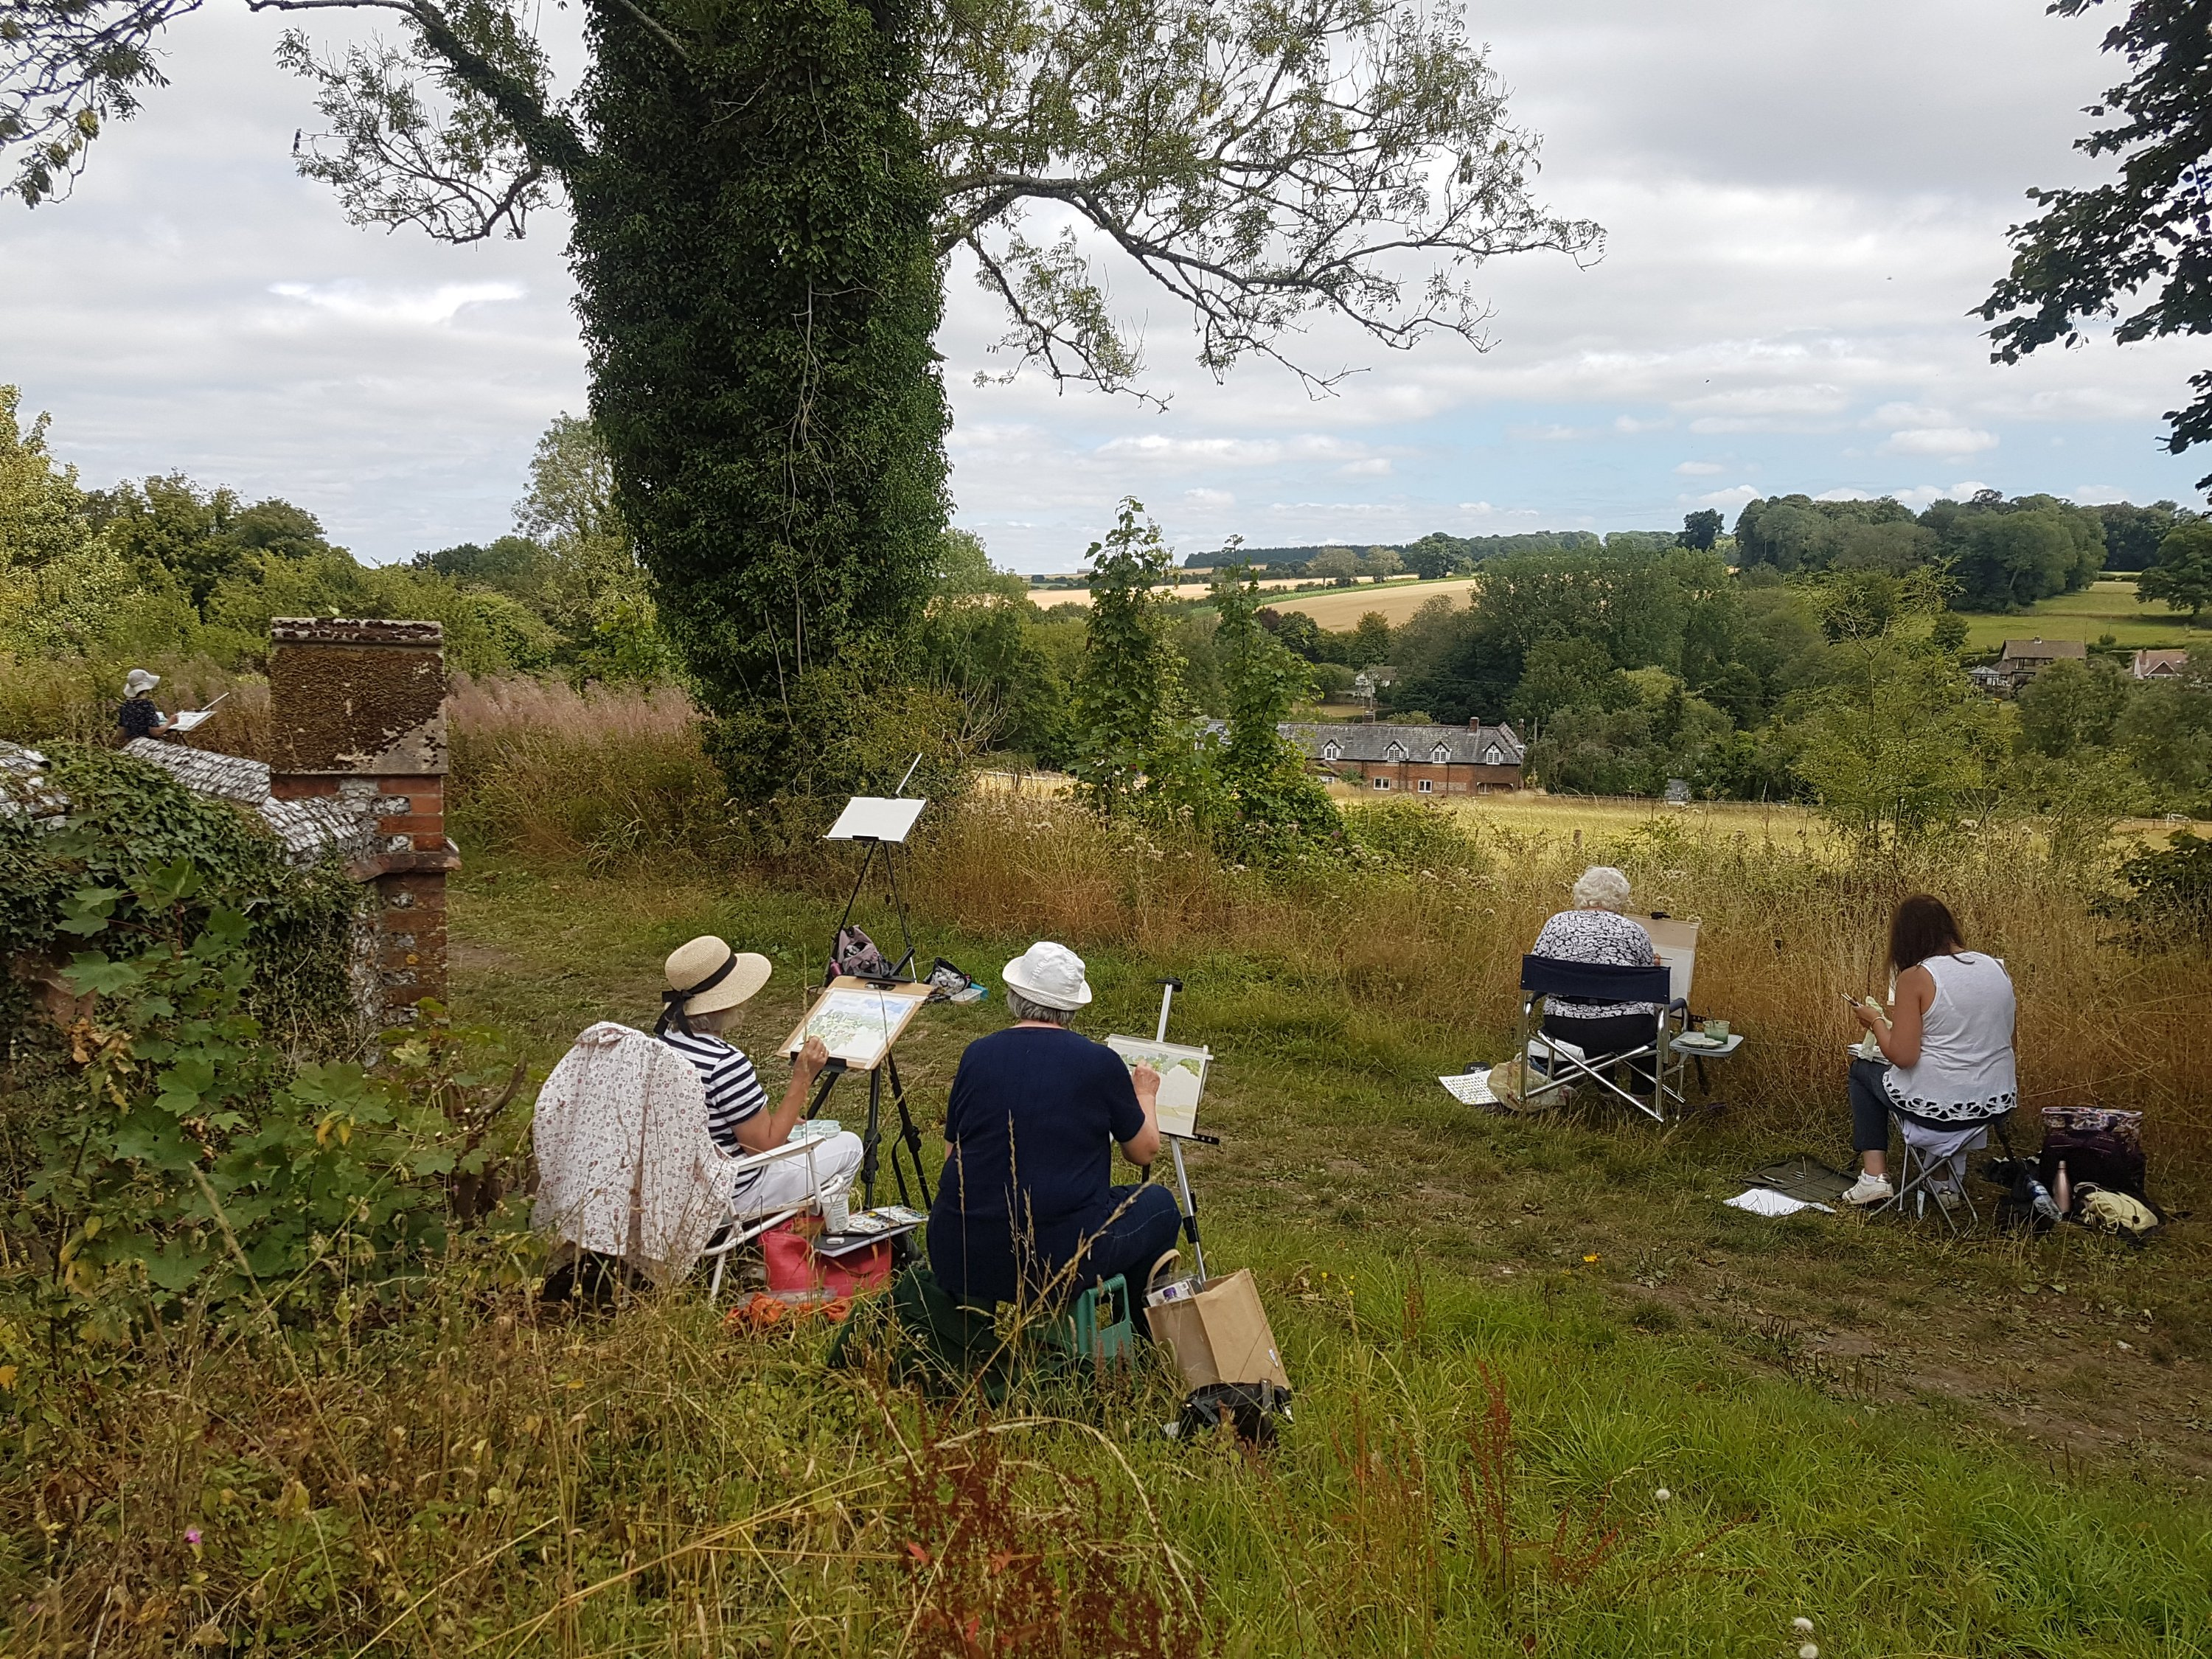 Rewarding Outdoor Painting Sessions in the Hampshire Countryside